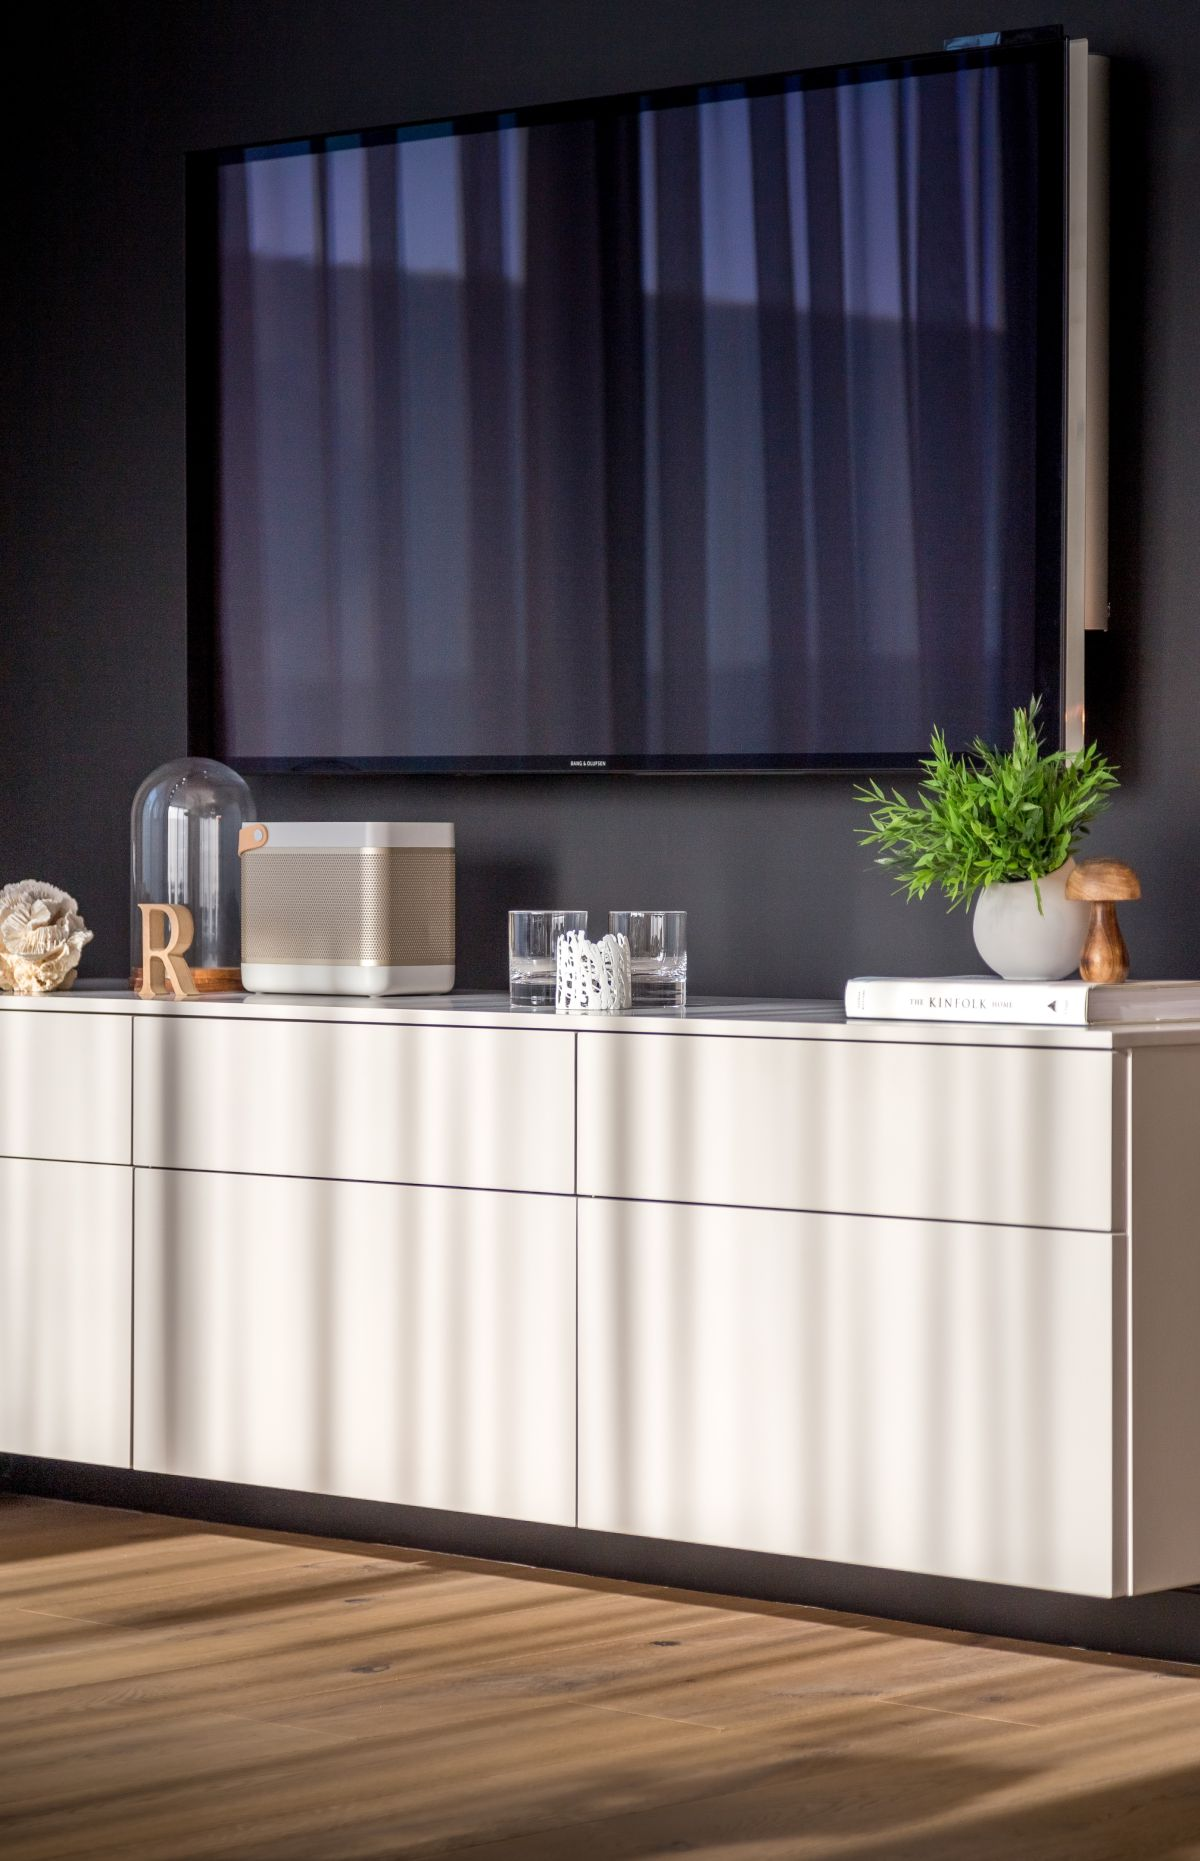 A storage cabinet is critical for hiding necessities in an open floor plan.